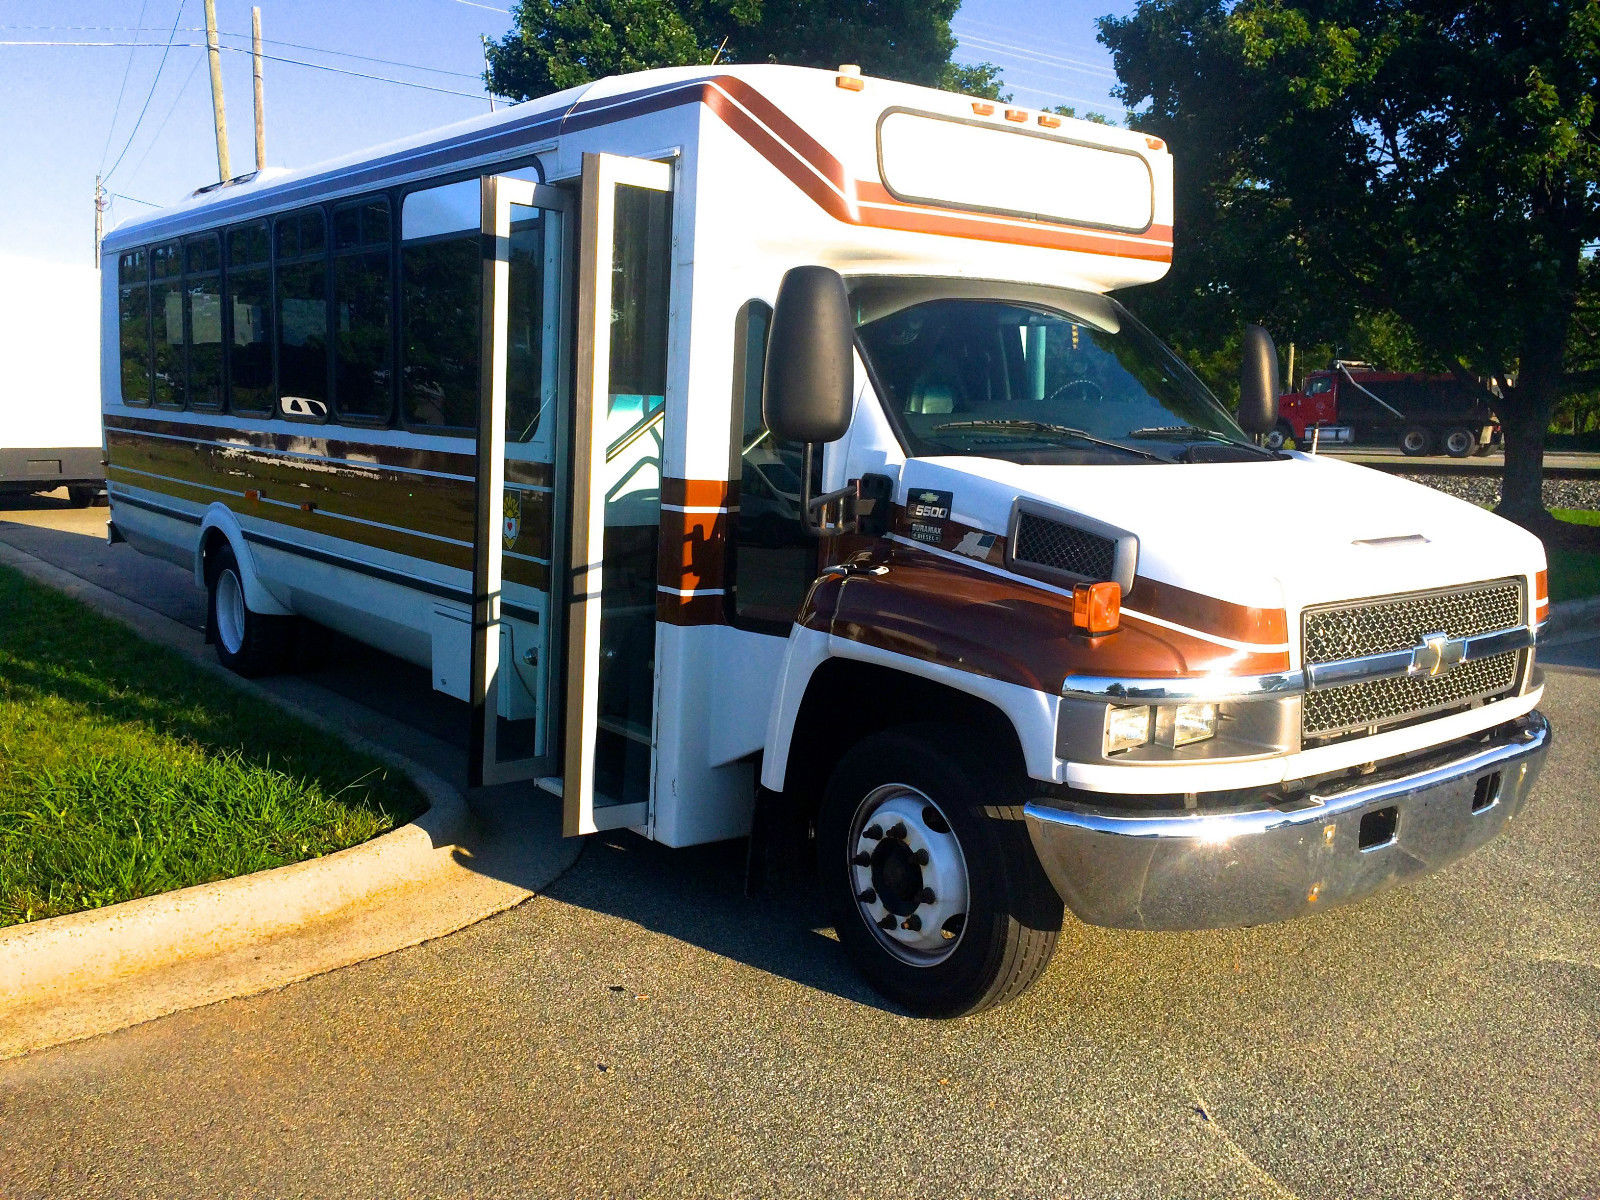 2009 Chevy Eldorado Shuttle Bus 29 33 Pass for sale